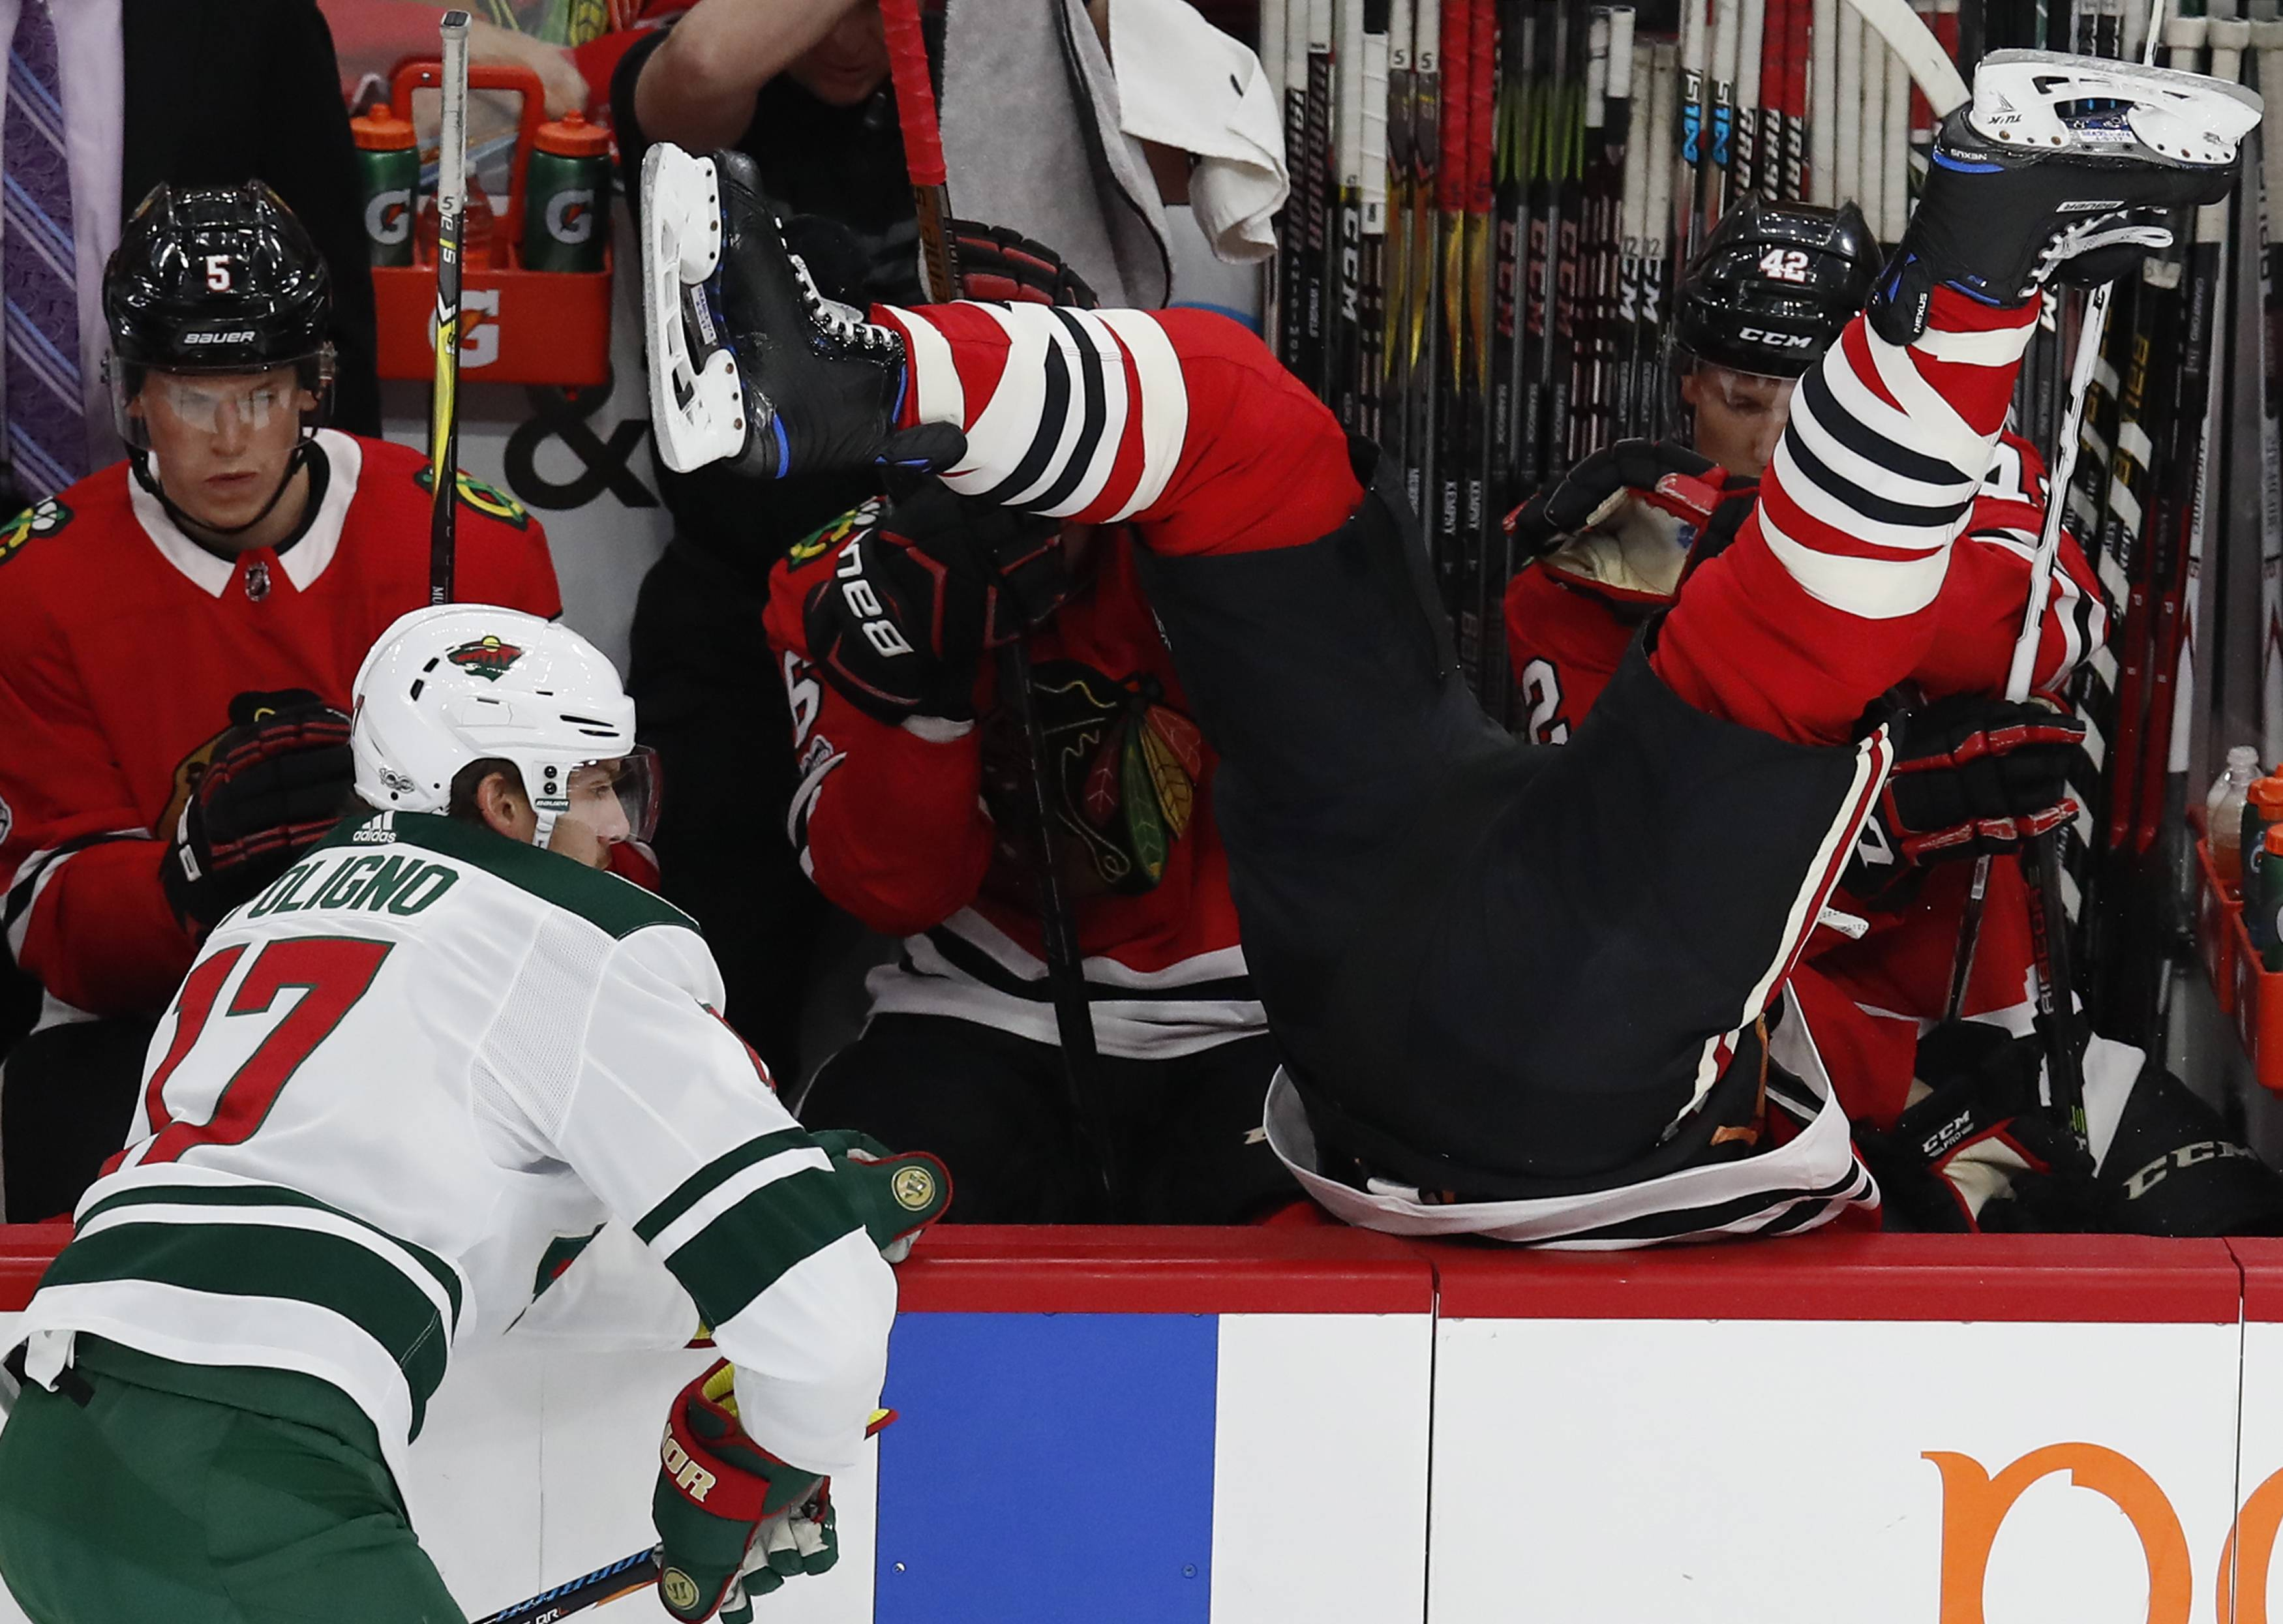 Chicago Blackhawks defenseman Brent Seabrook goes over the boards after getting checked by Minnesota's Marcus Foligno during the first period Thursday in Chicago.